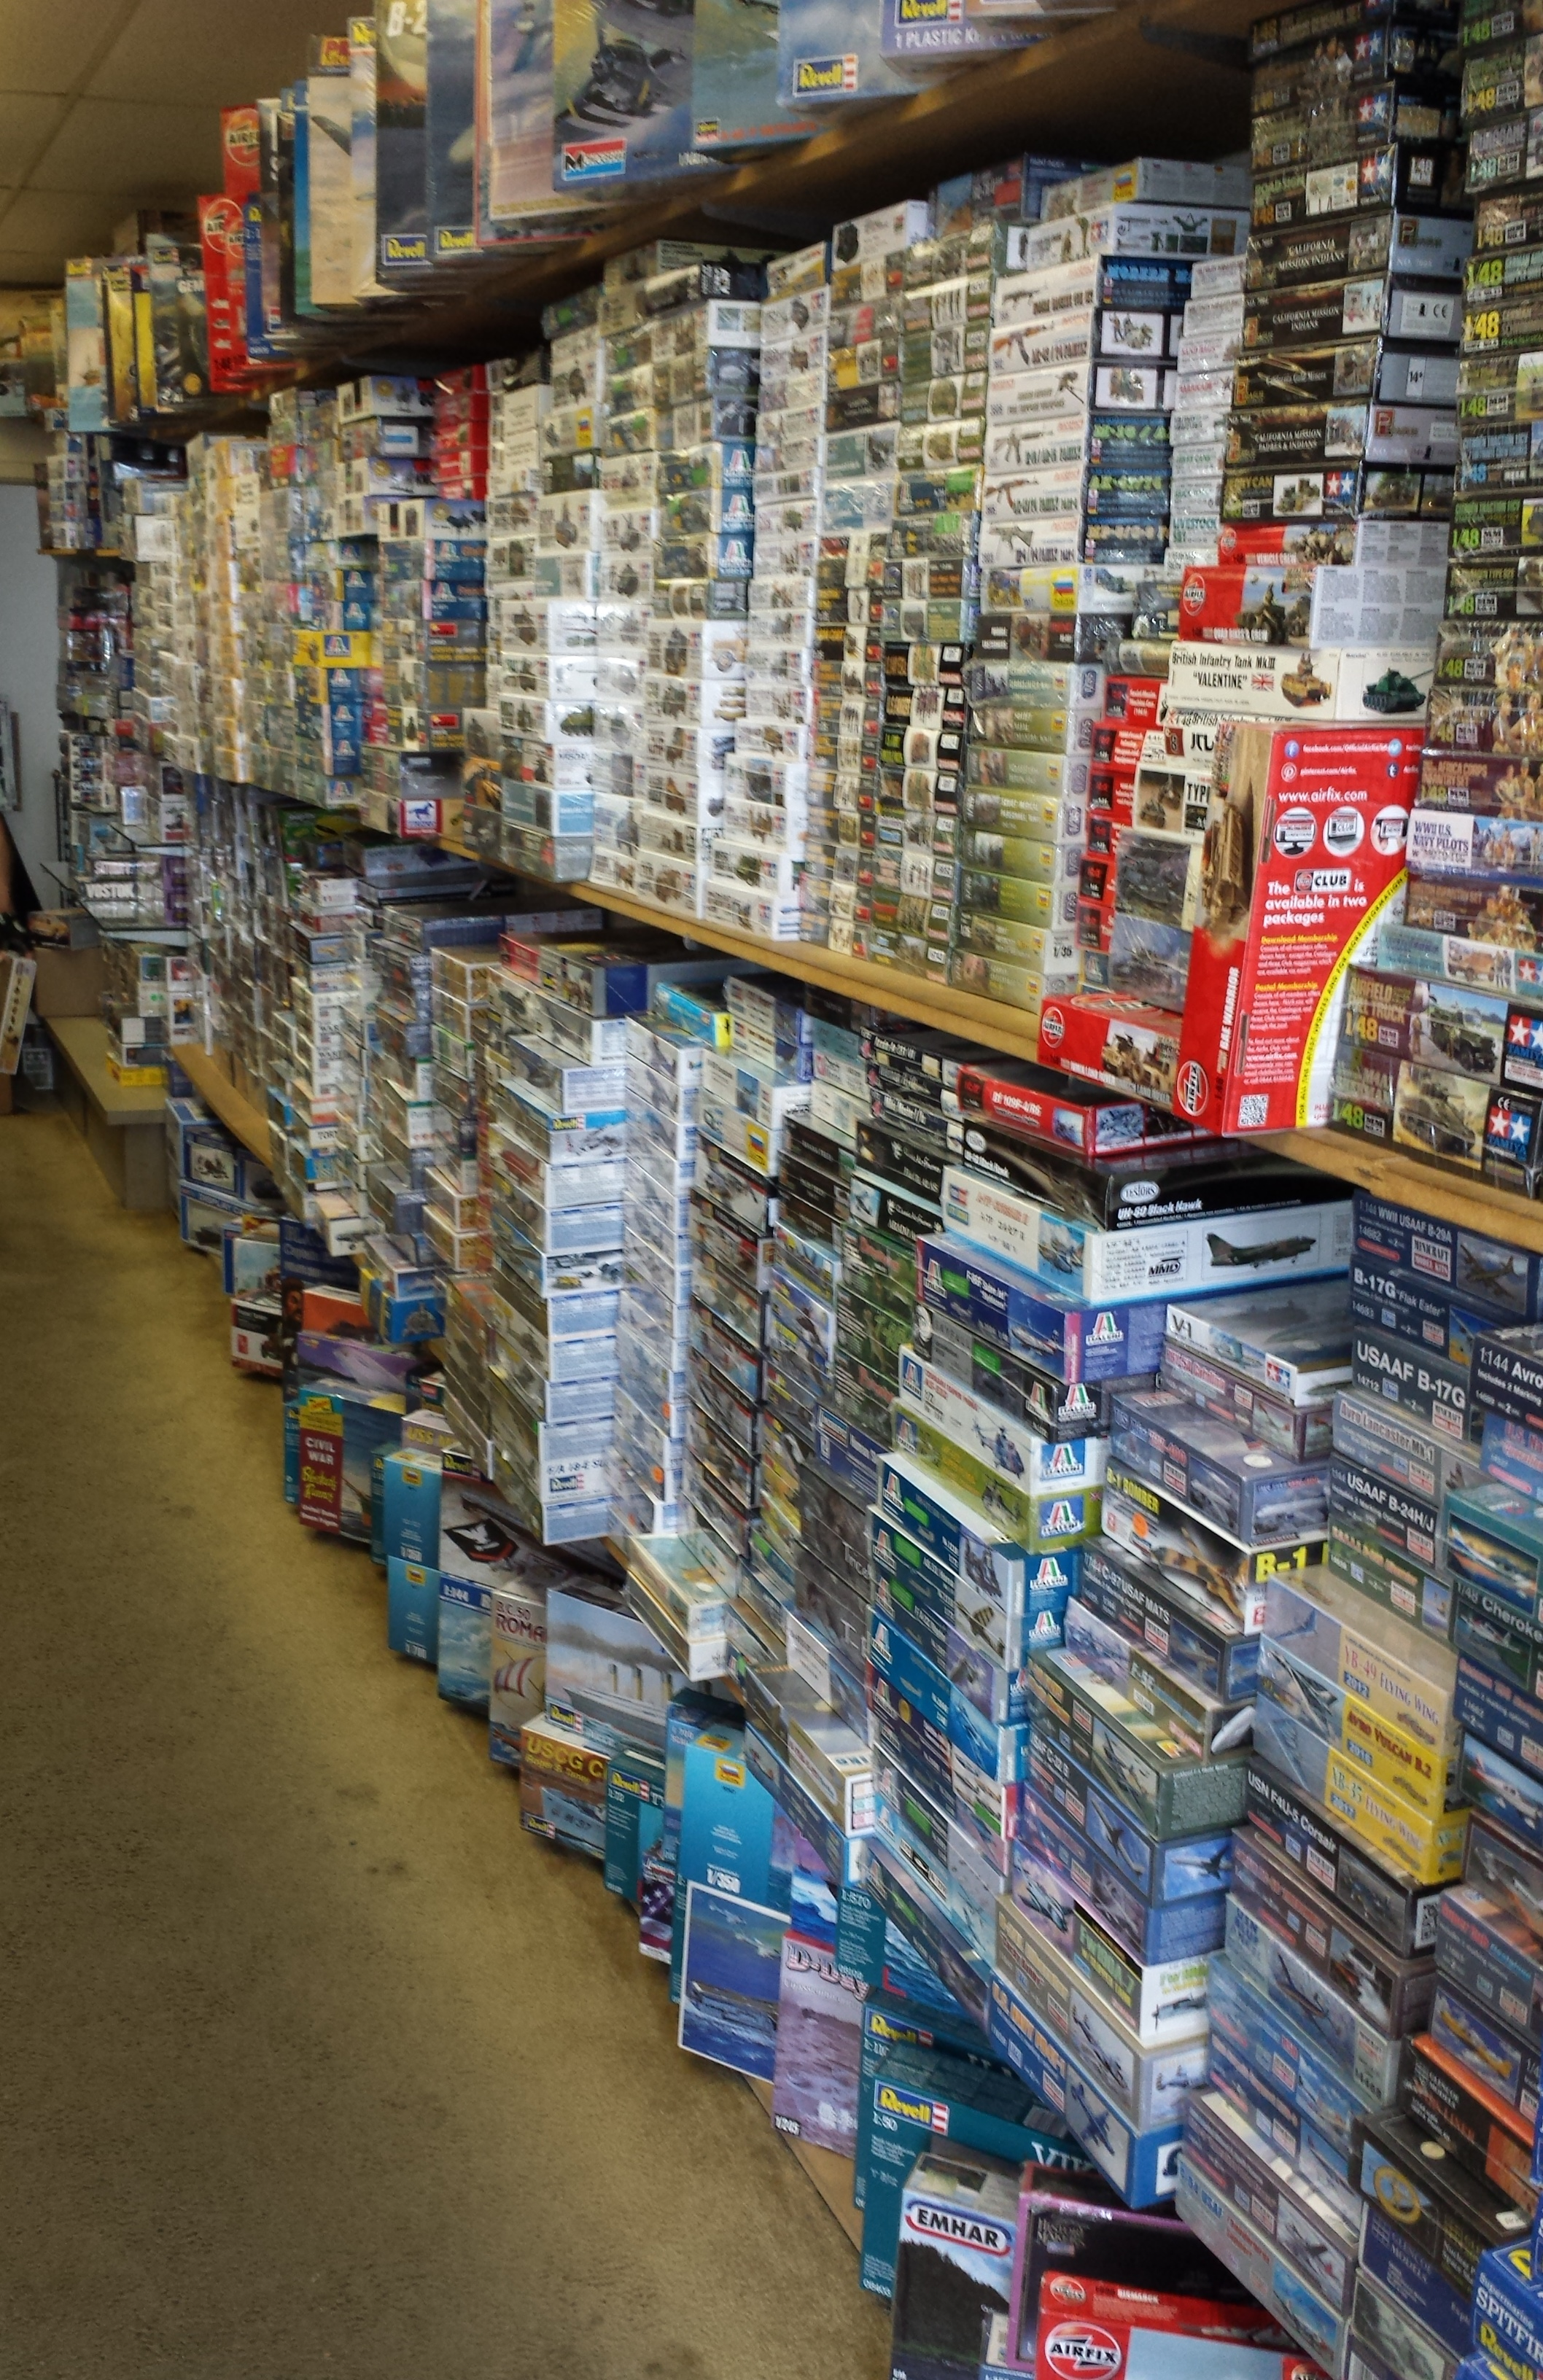 North Carolina Sports Card Shop locator - See featured sports card shops in NC including hobby shops in Boone,Cary,Fayetteville,Gastonia,Greensboro,Greenville.